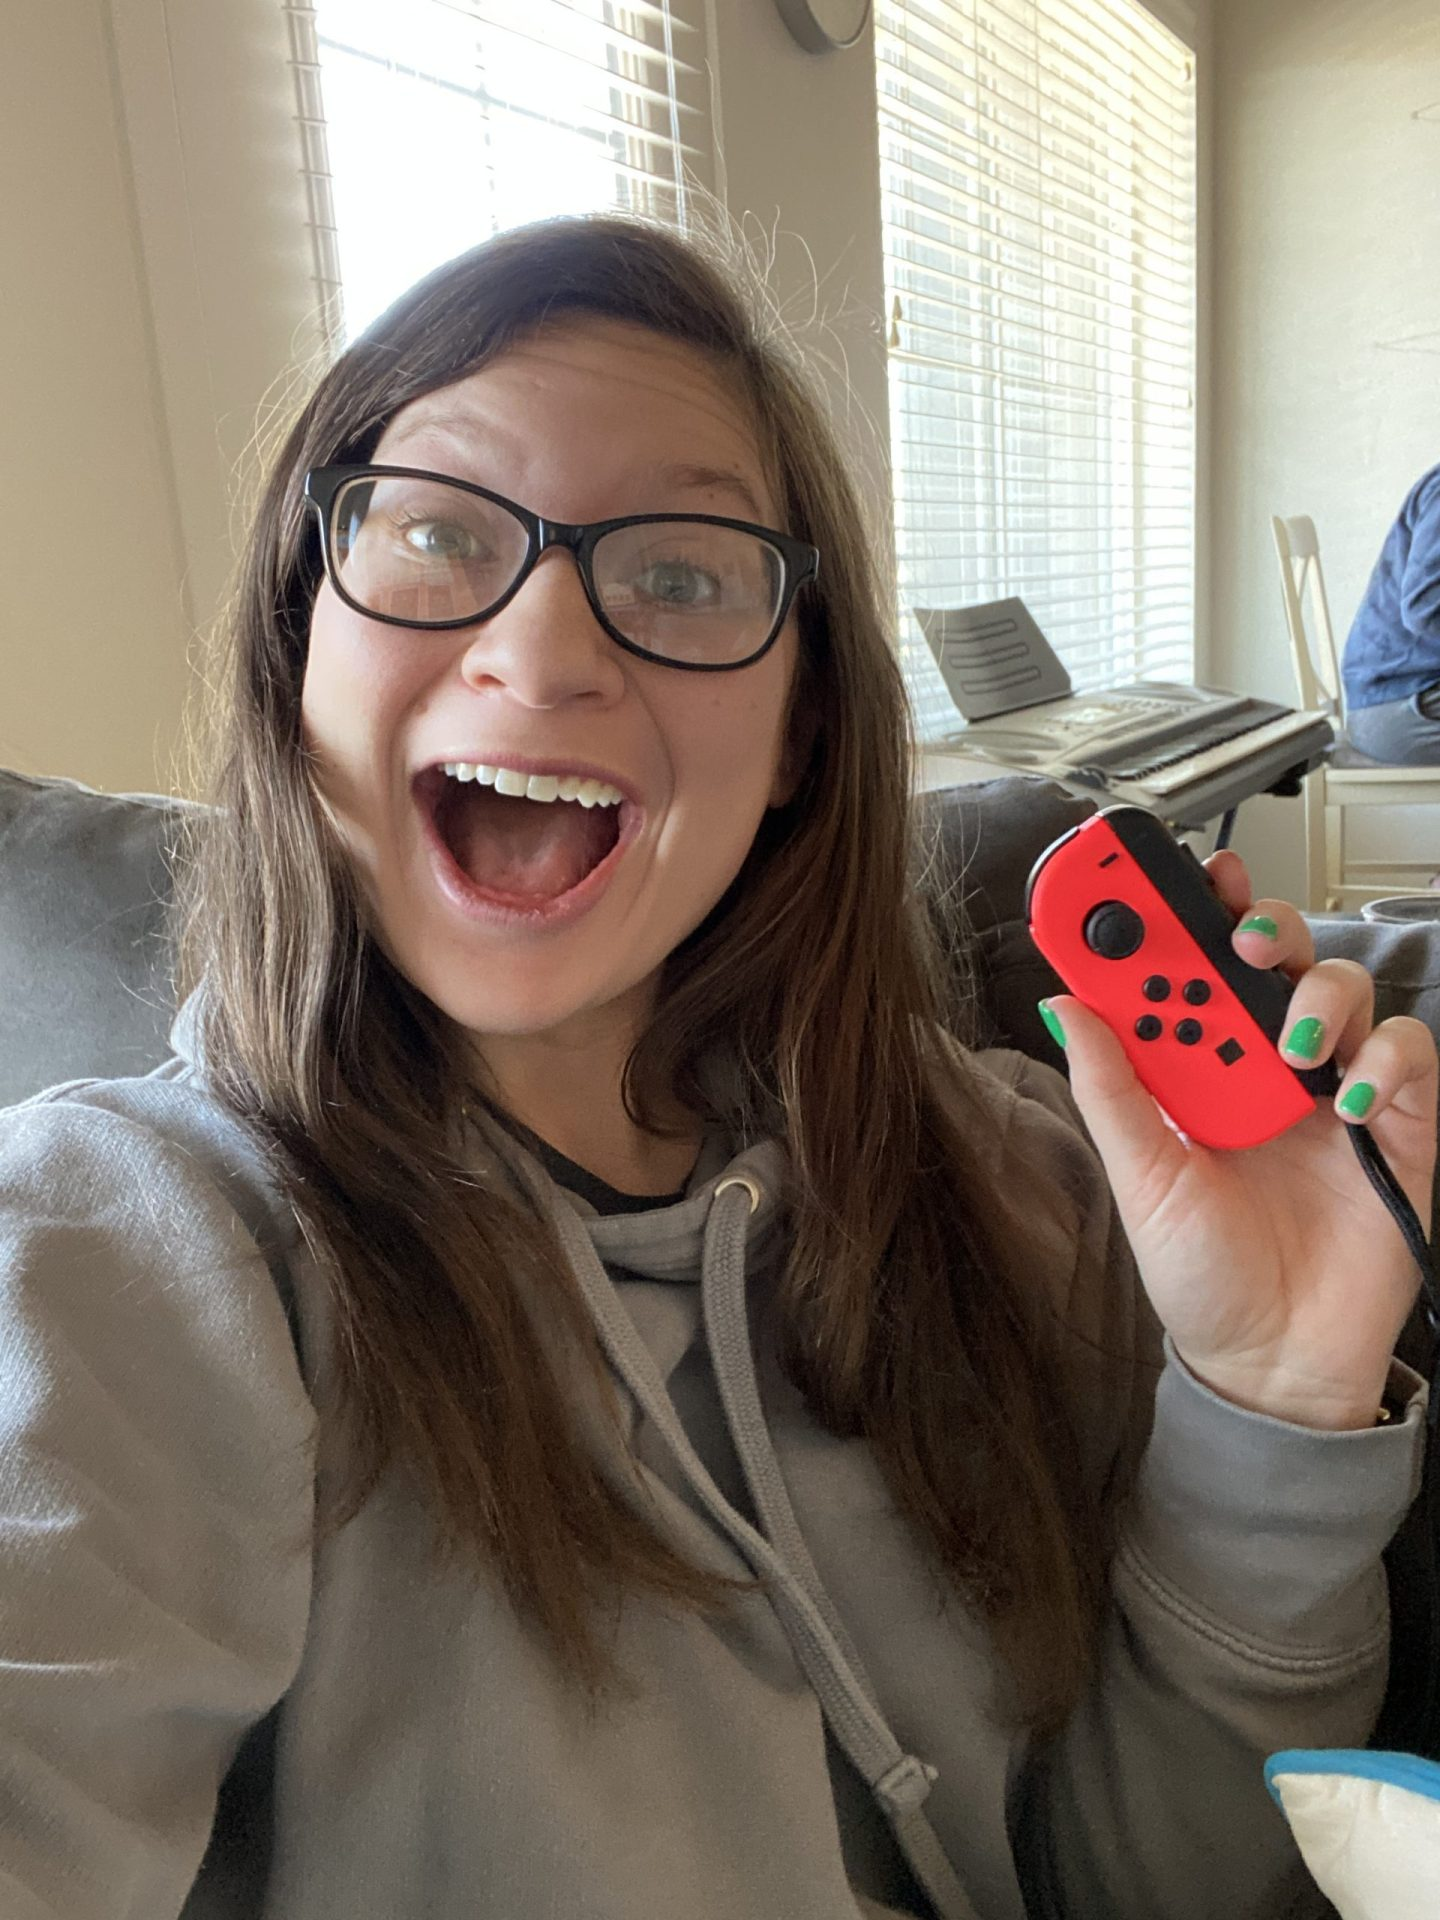 Hayle Santella Playing Nintendo Switch while self-isolating